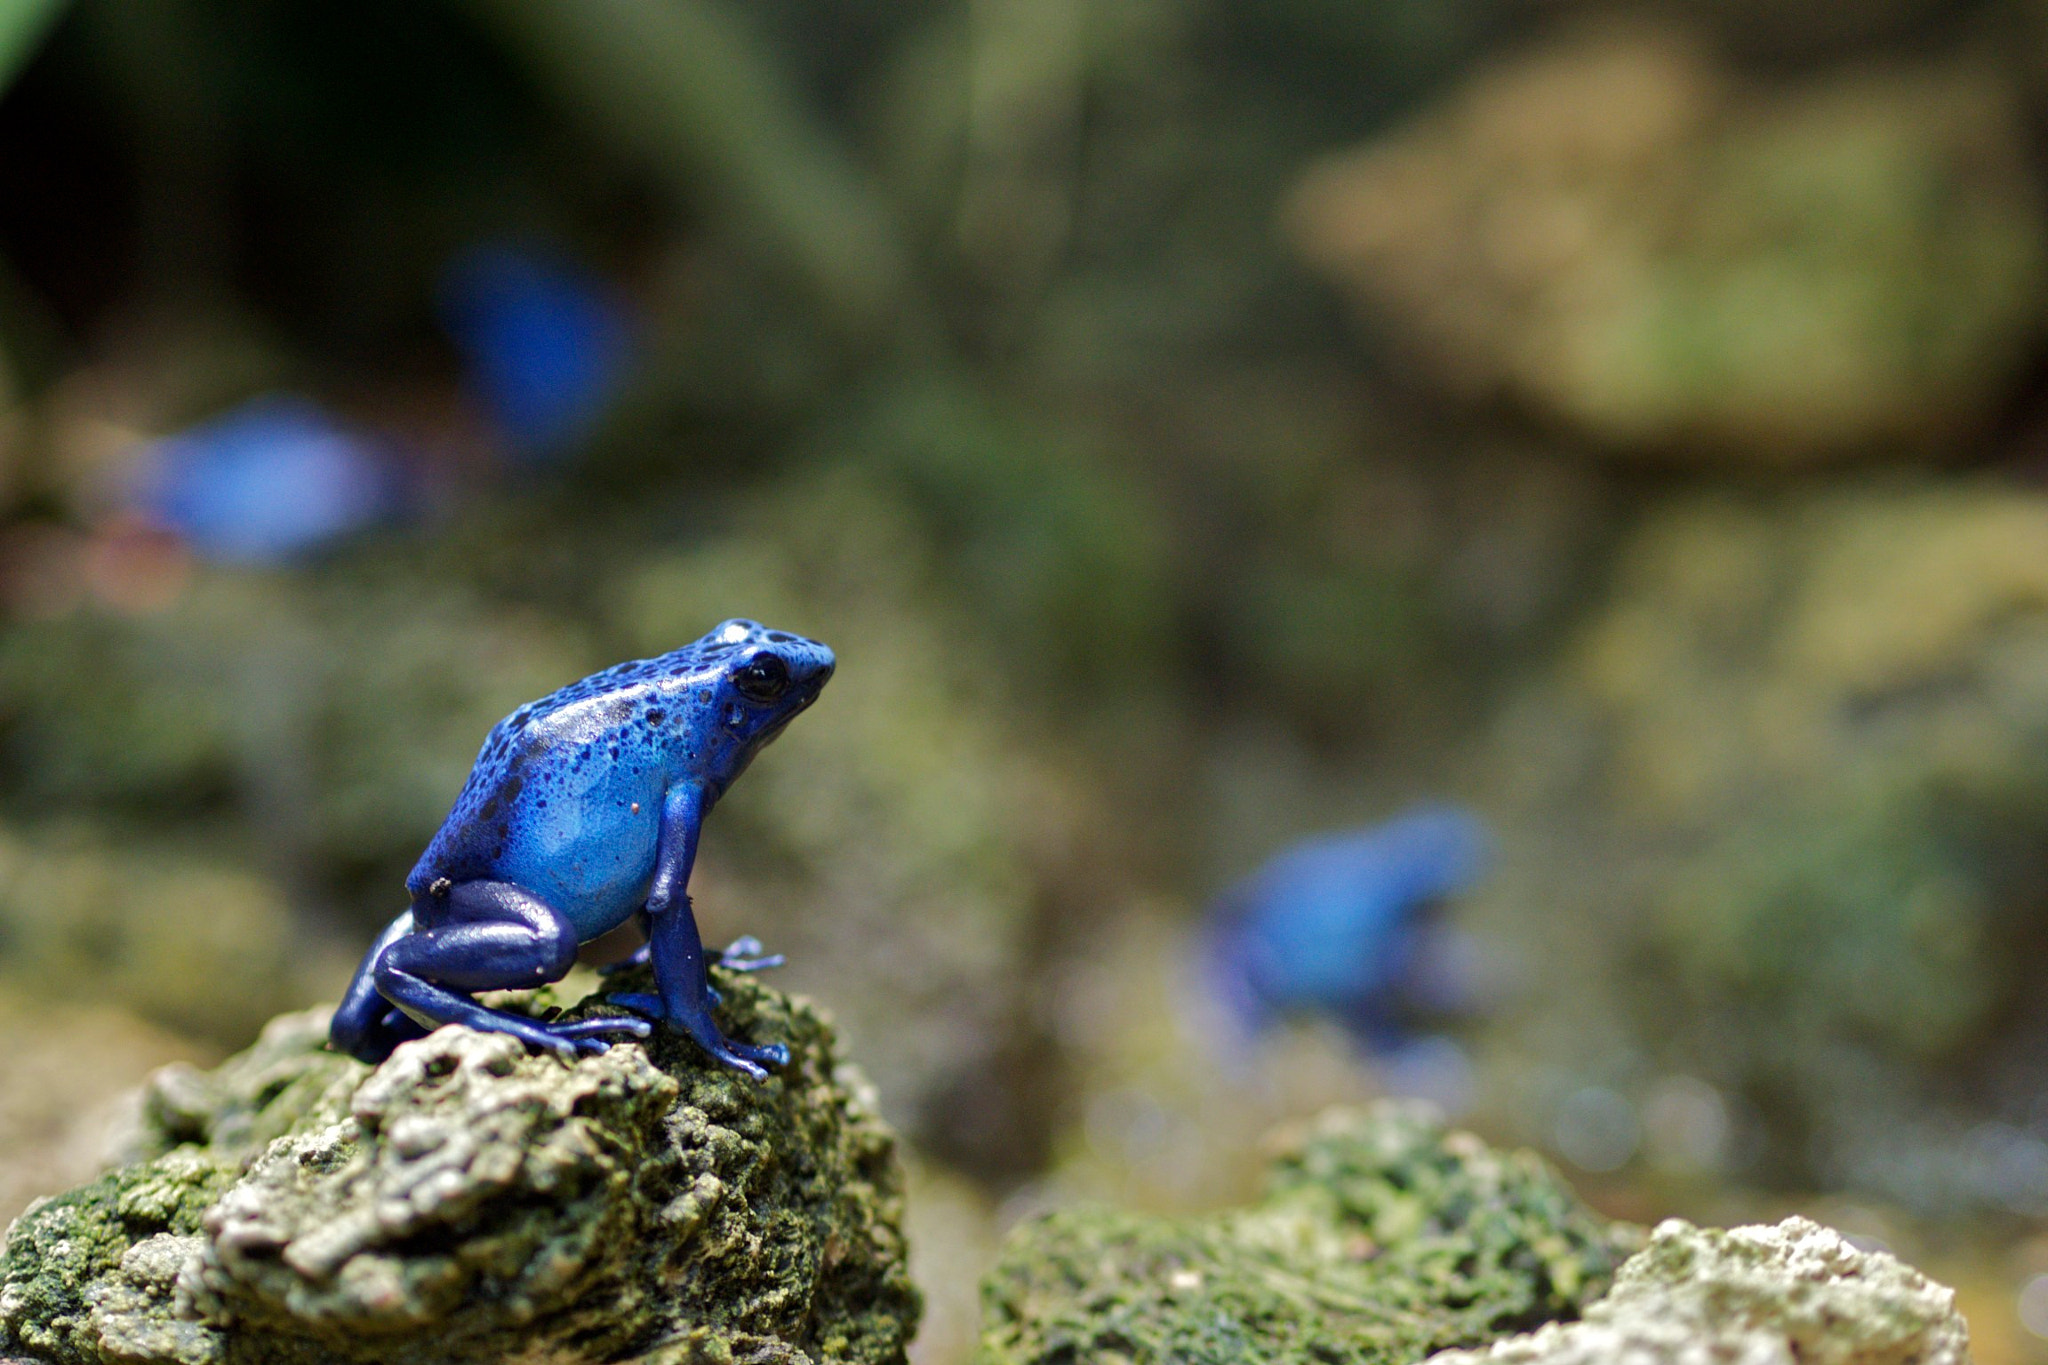 Photograph Blue Frog by Philipp Weimer on 500px